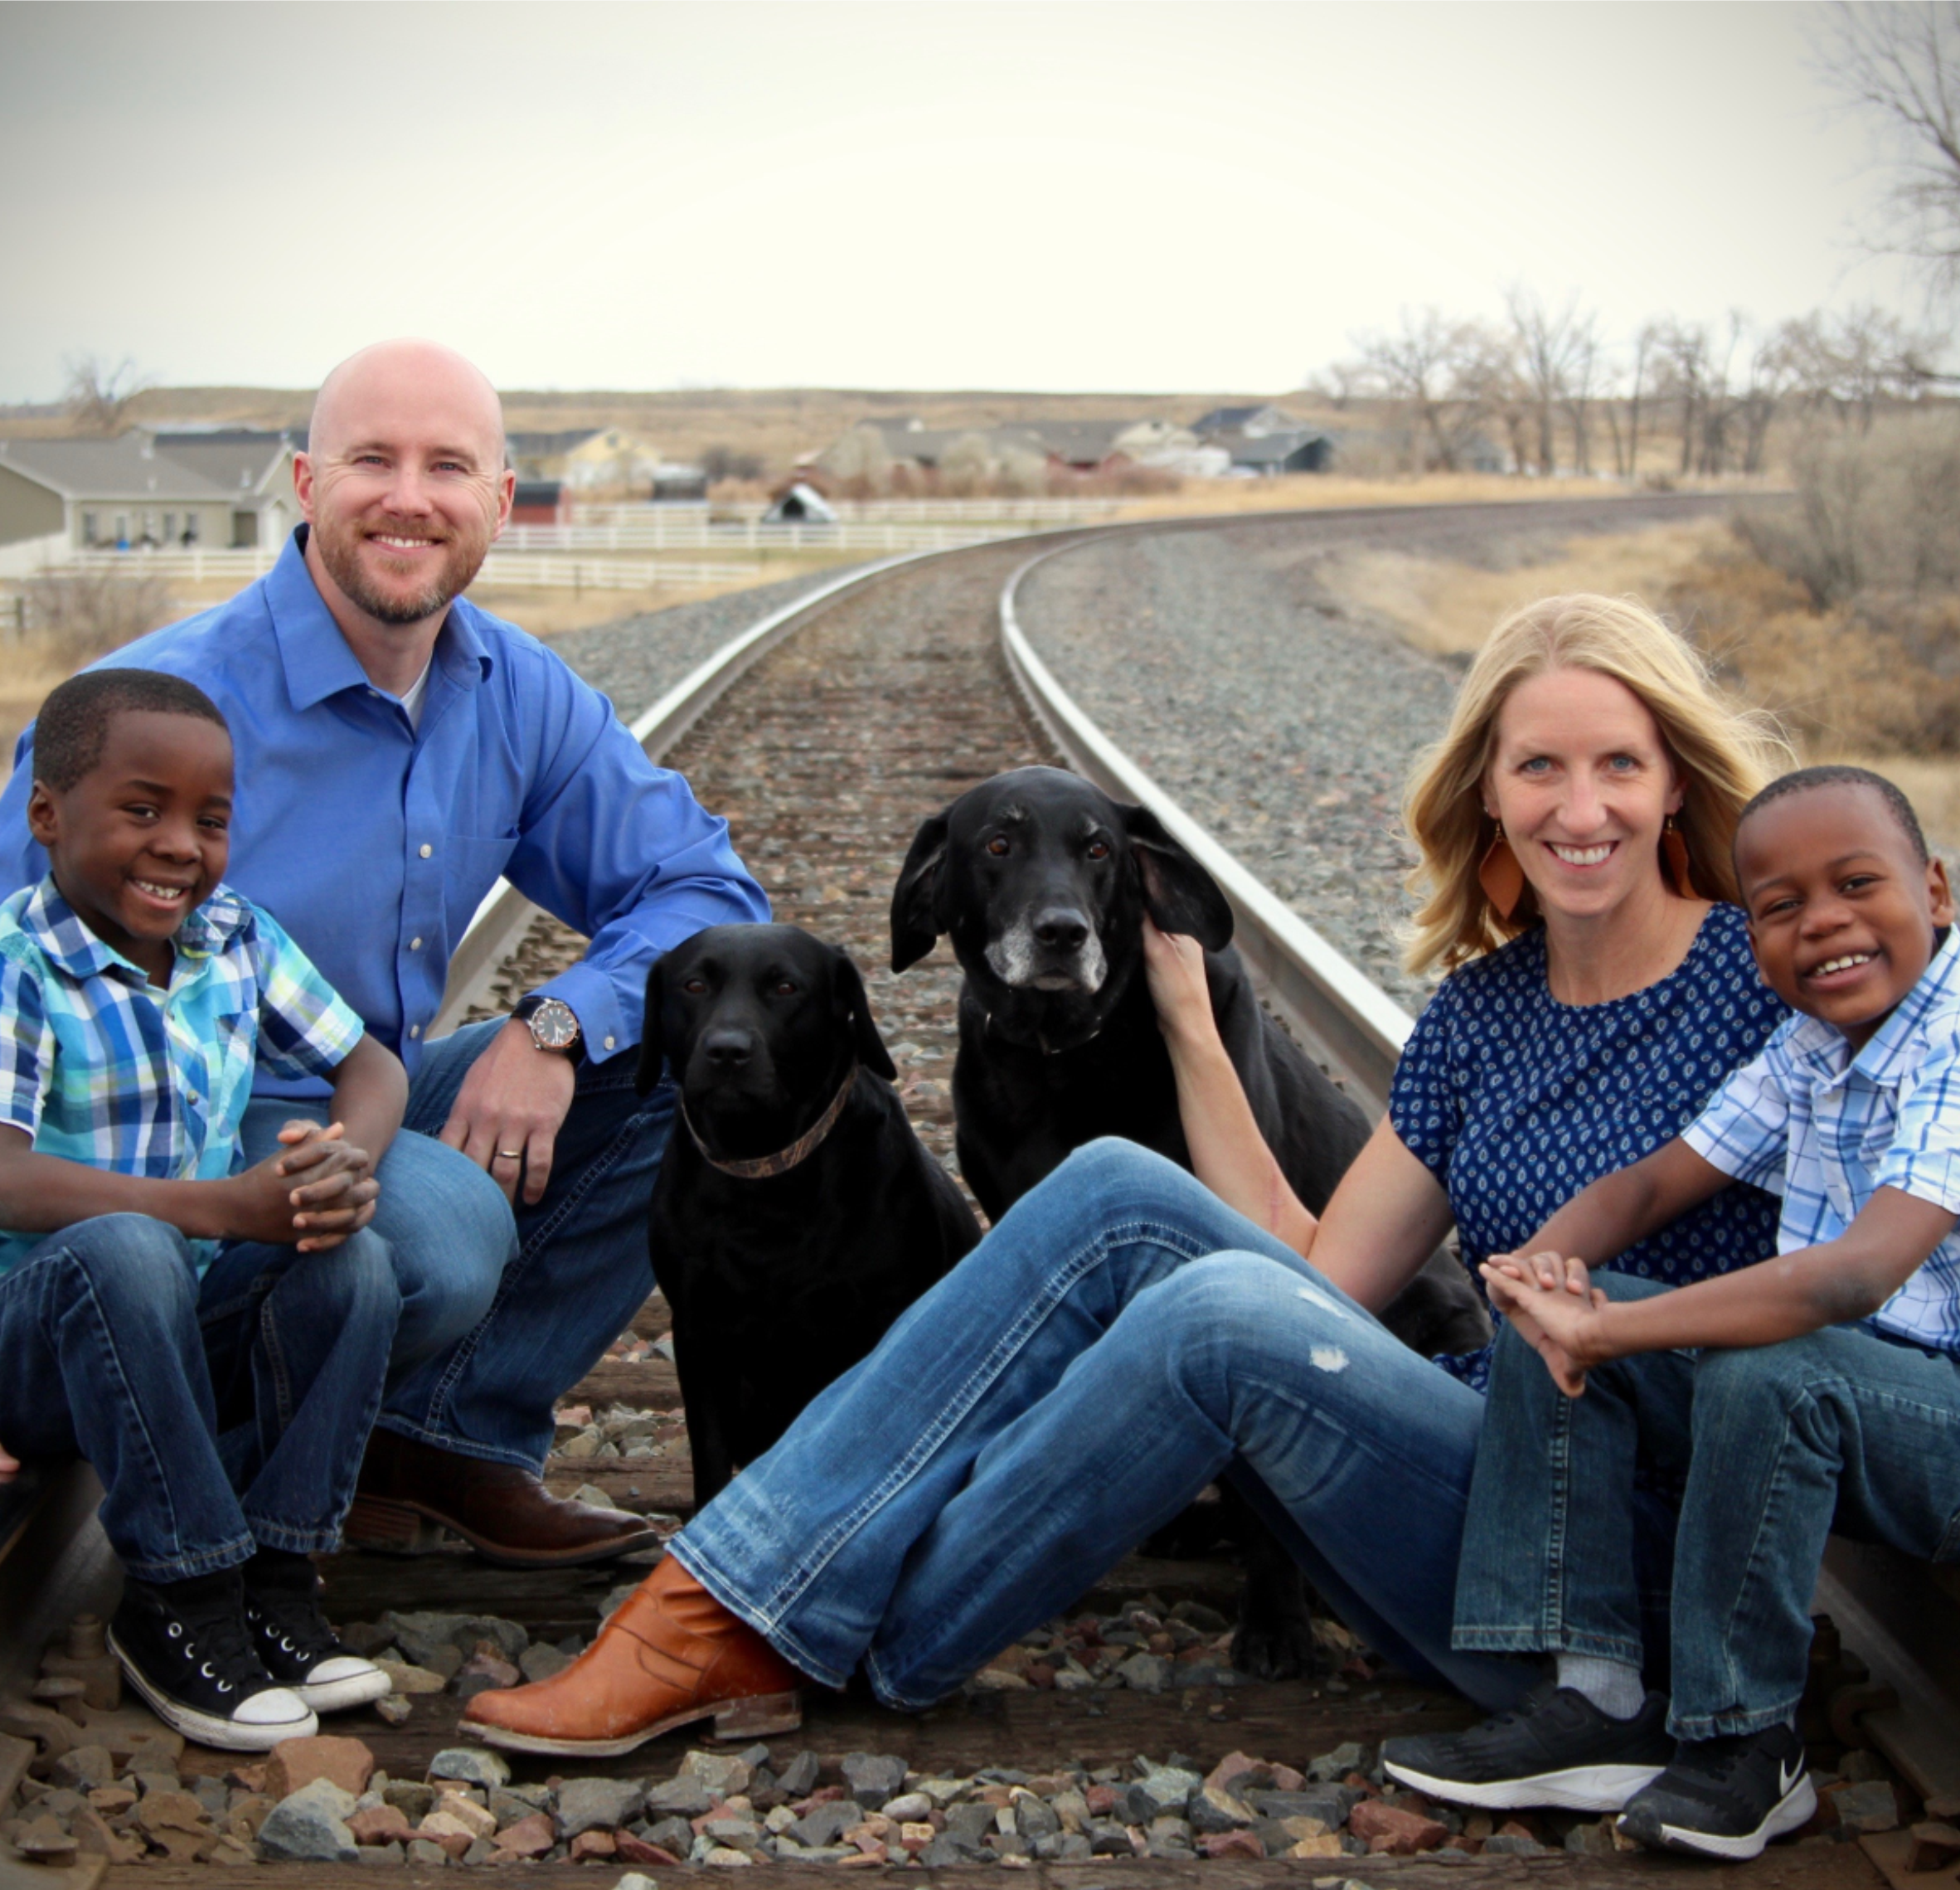 The Taber Family